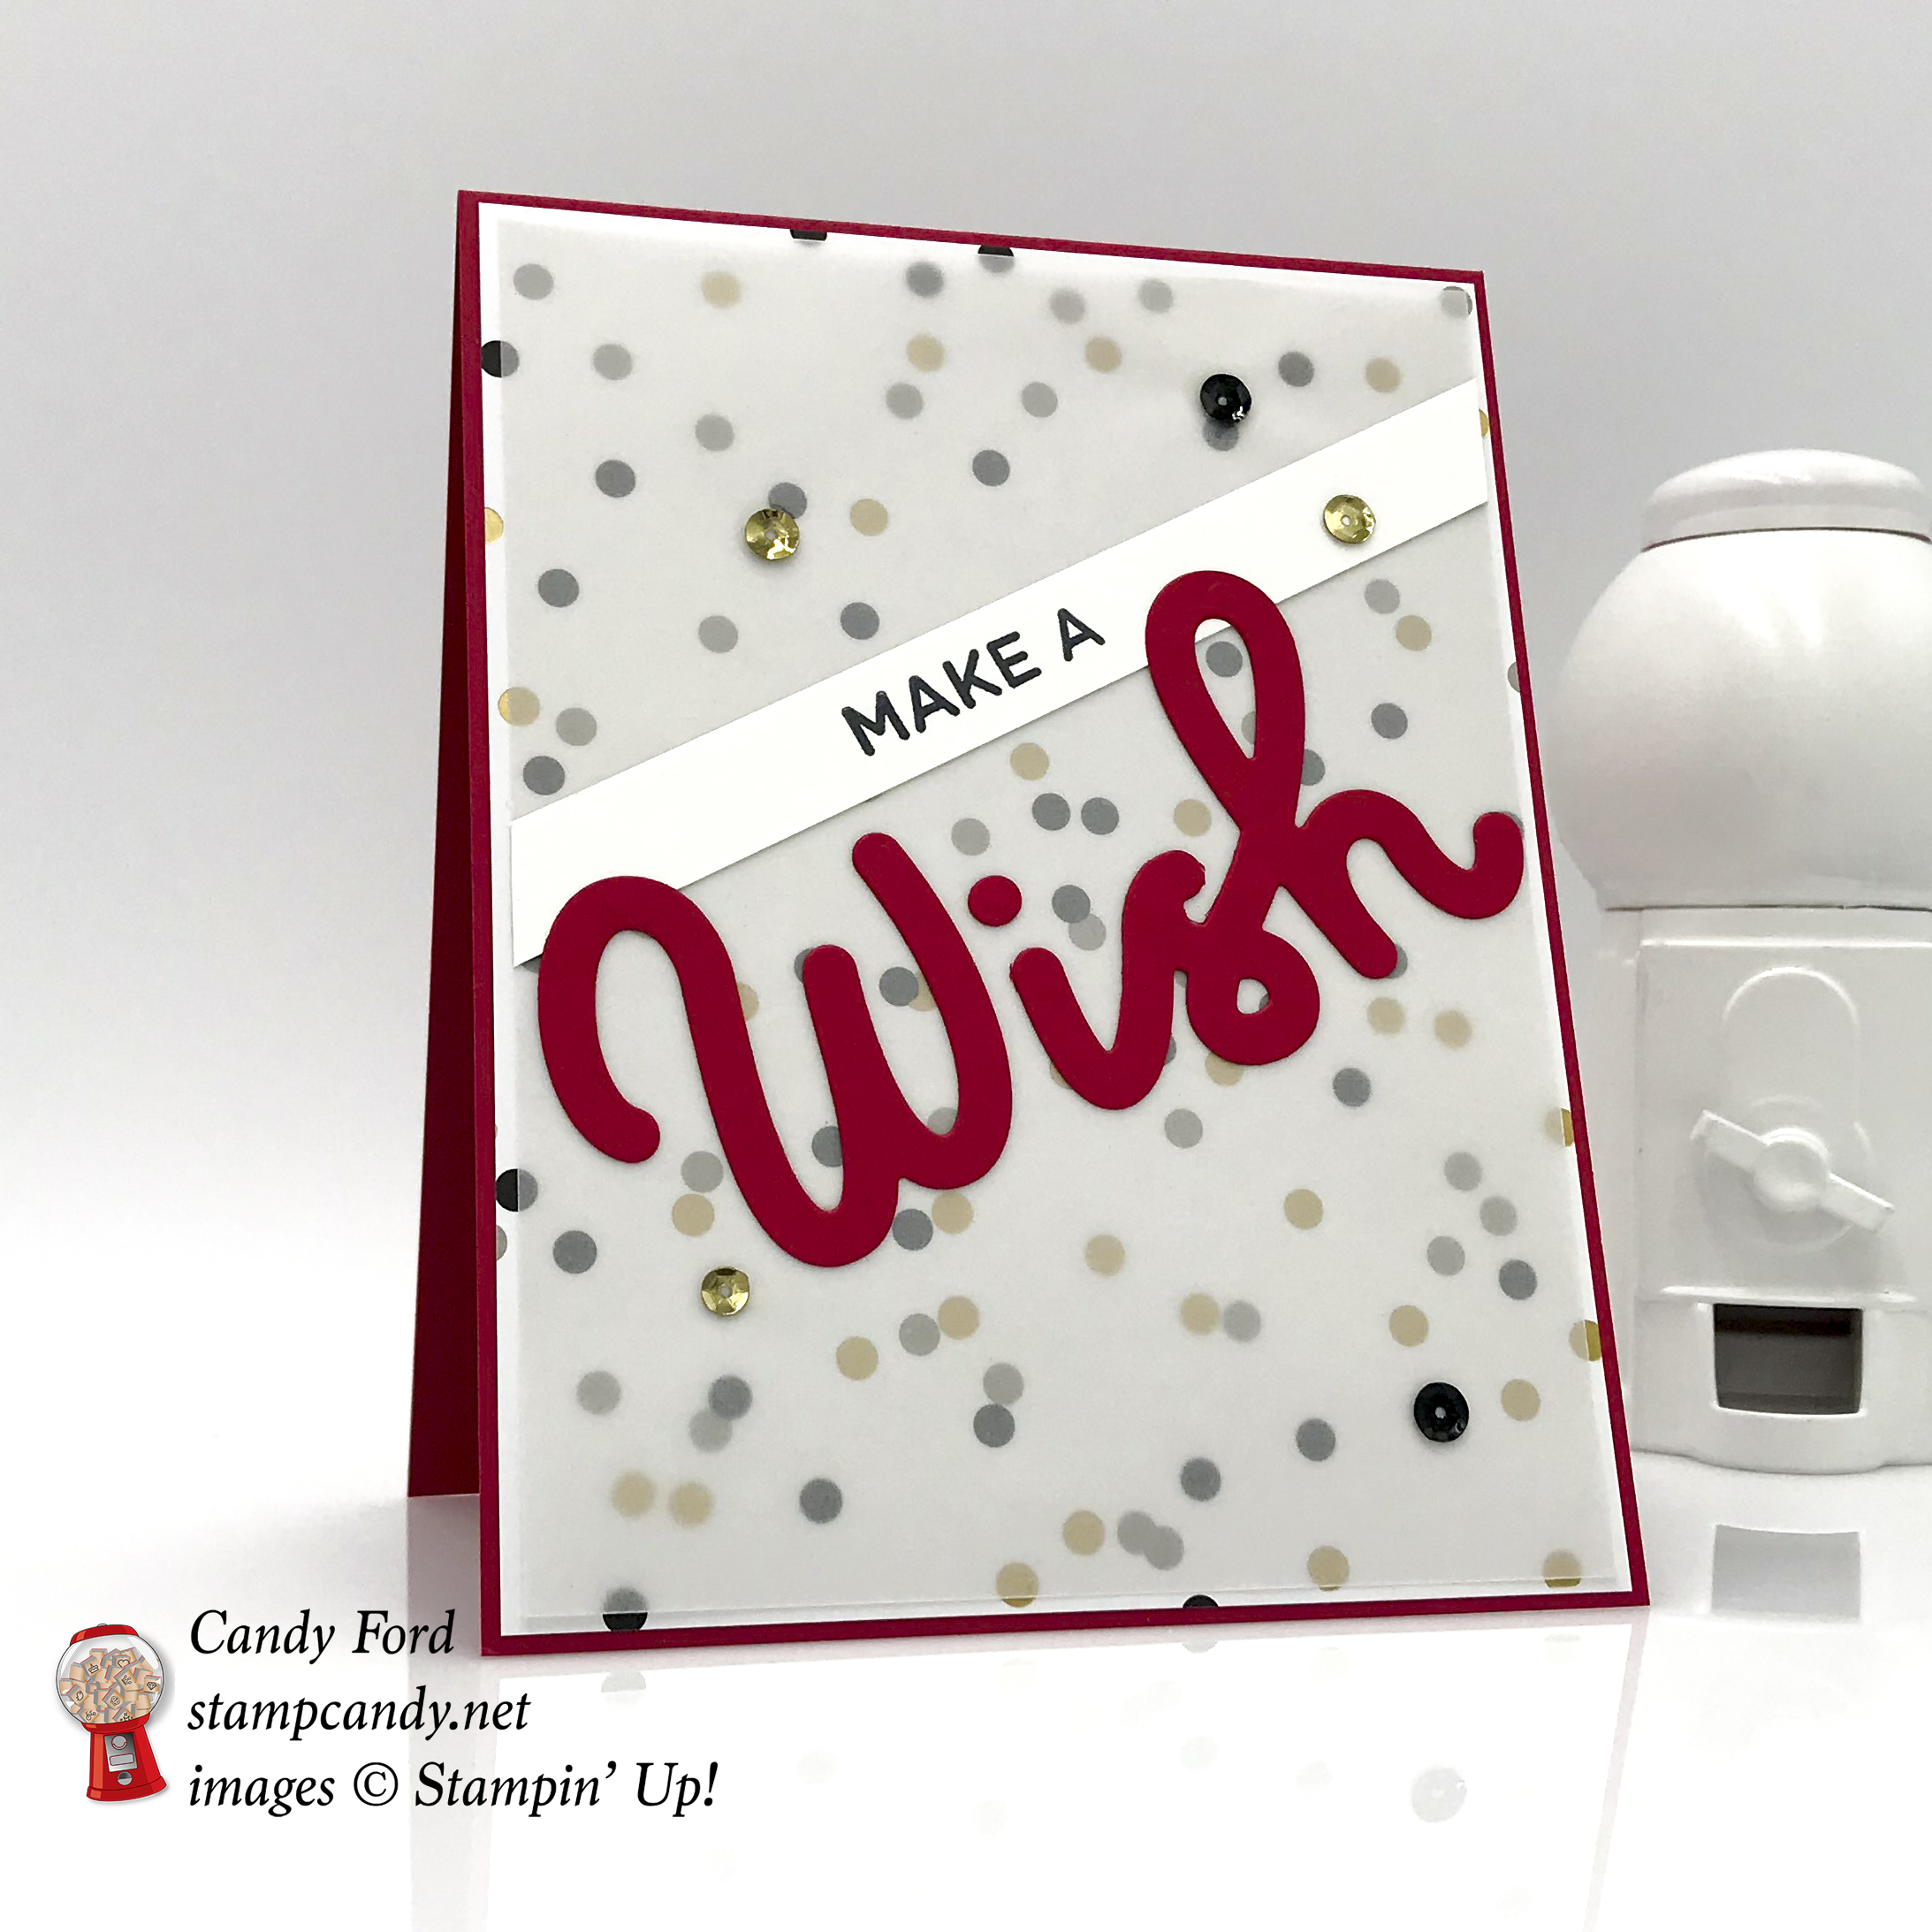 Broadway Birthday Bundle make a wish card, vellum, sequins, all by Stampin' Up! #stampcandy